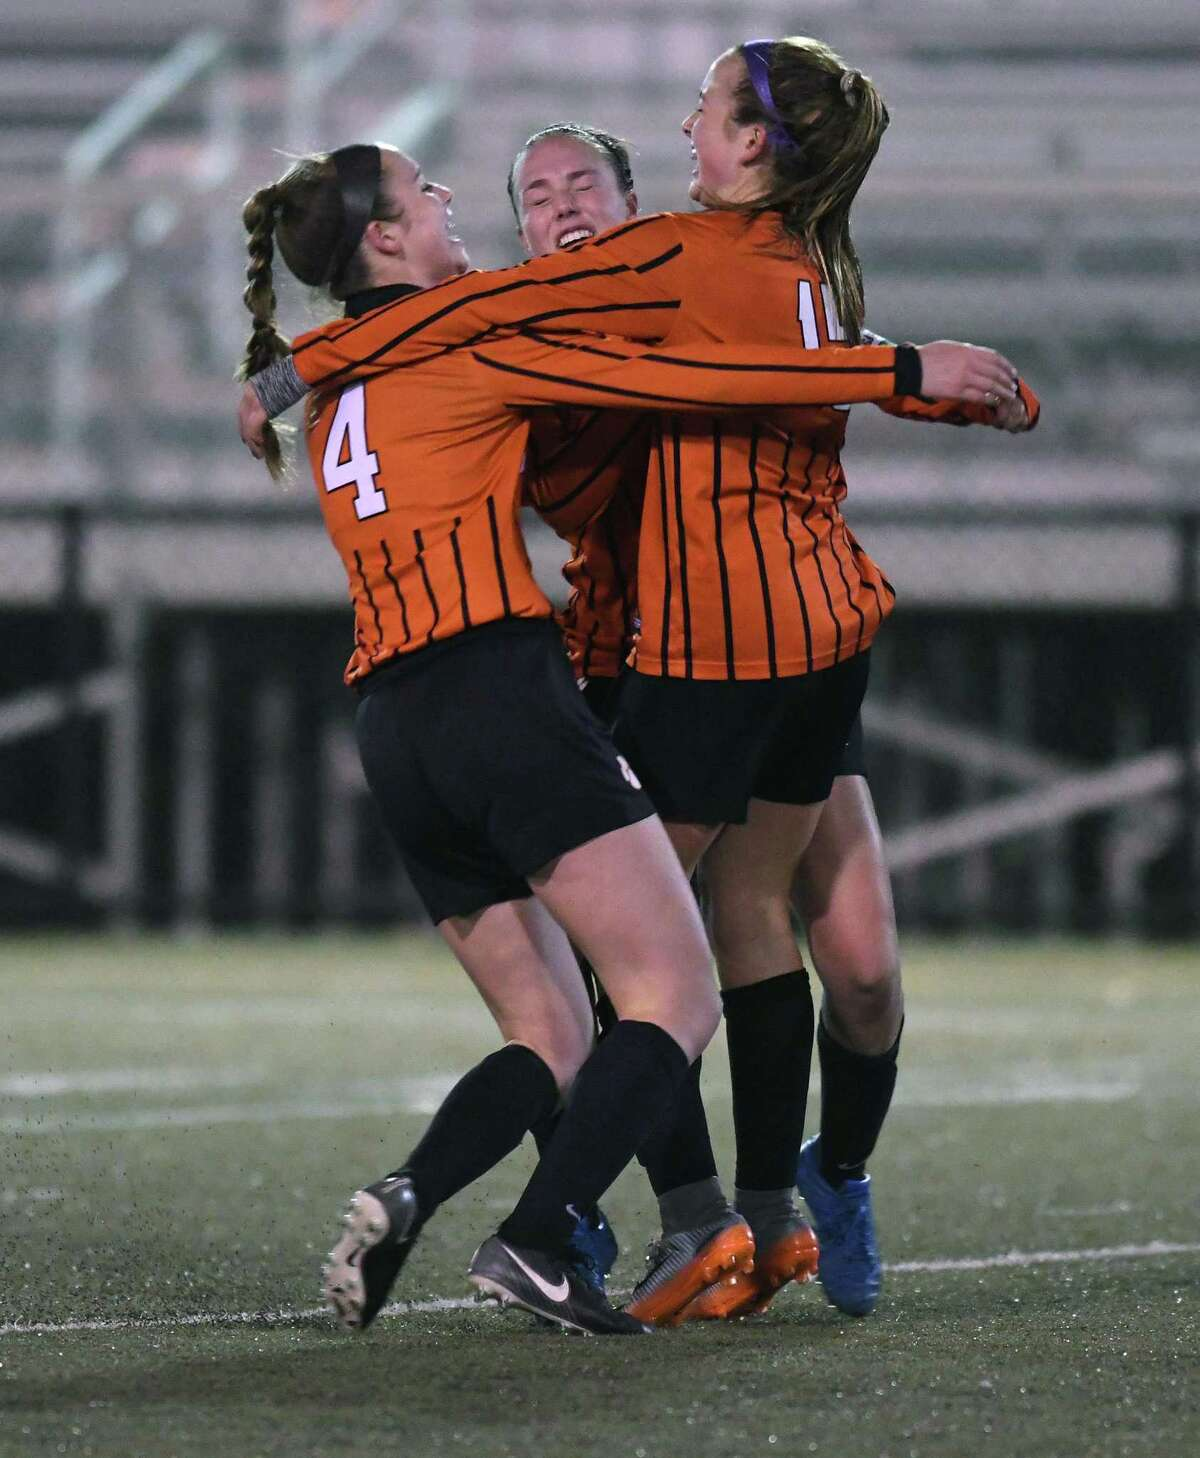 From left, Ridgefield?'s Claire Middlebrook, (4) and Erika Linke celebrate Faith Arnold?'s successful penalty kick that sealed Ridgefield?'s win in the Class LL state girls soccer semifinal between Ridgefield and Glastonbury at Municipal Stadium in Waterbury 10/15/17.